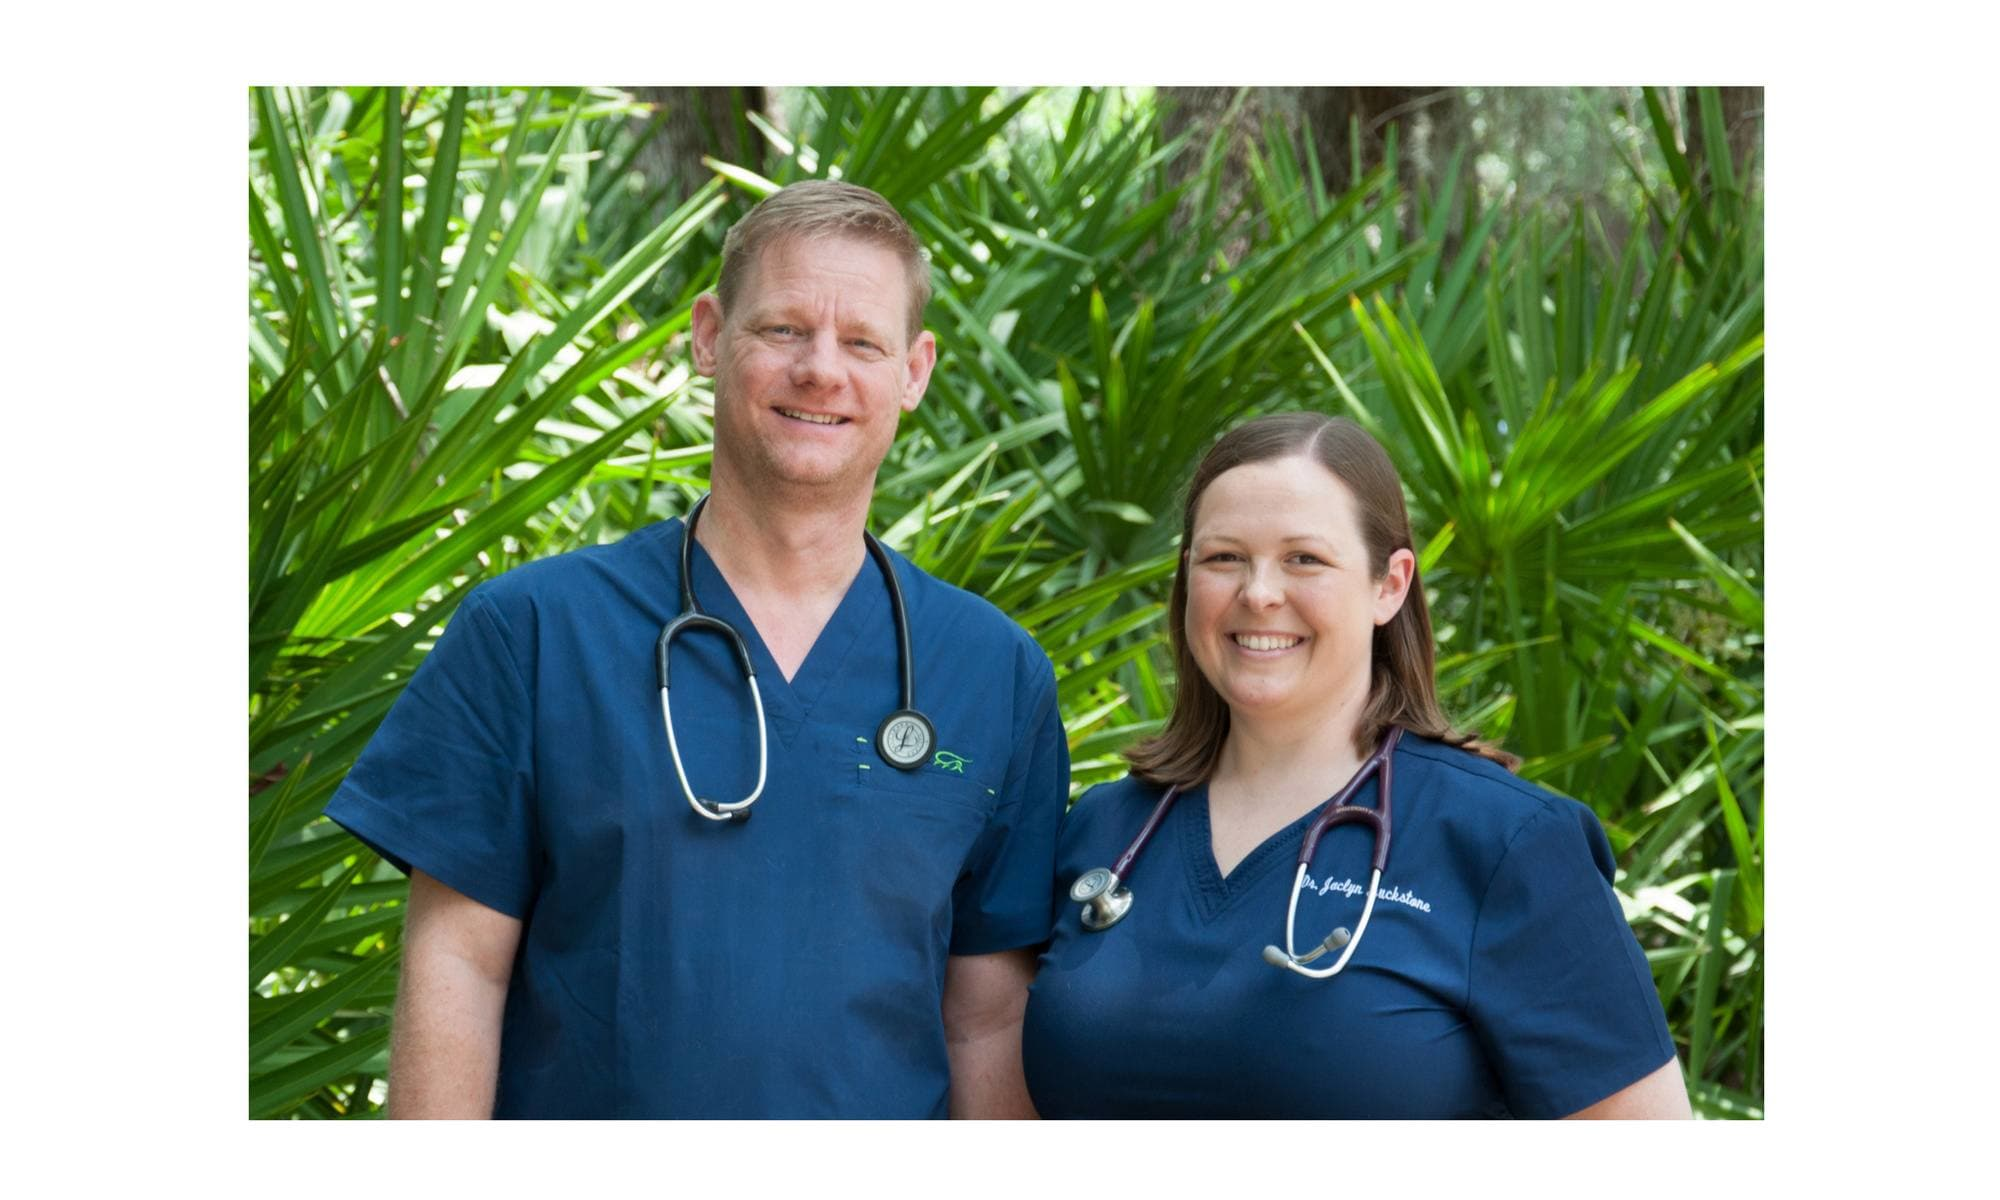 Animal hospital in St. Simons Island, GA